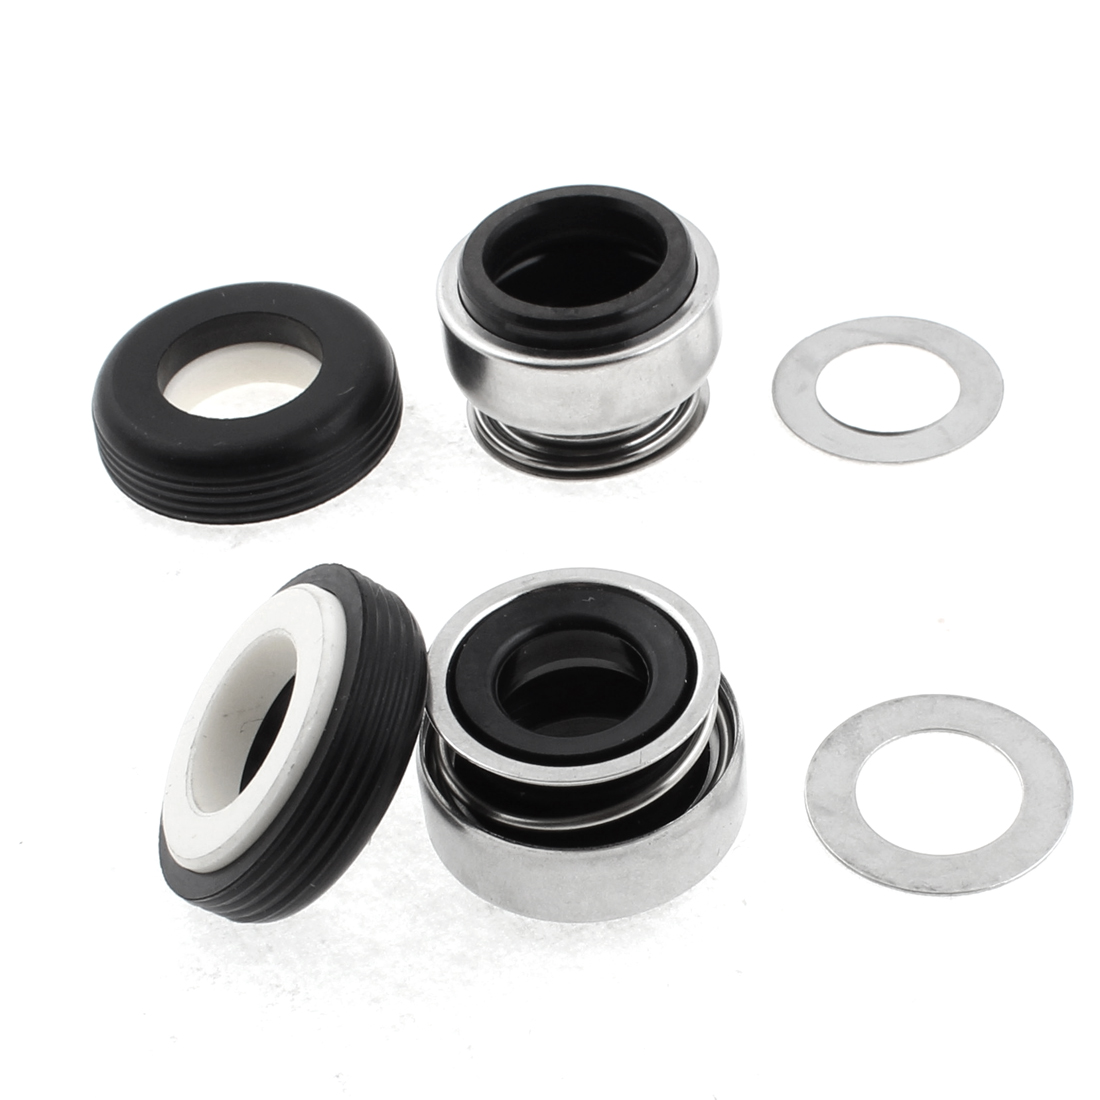 Metal Spring Mechanical Rubber Bellows Water Pump Seal 15mm Dia 2pcs